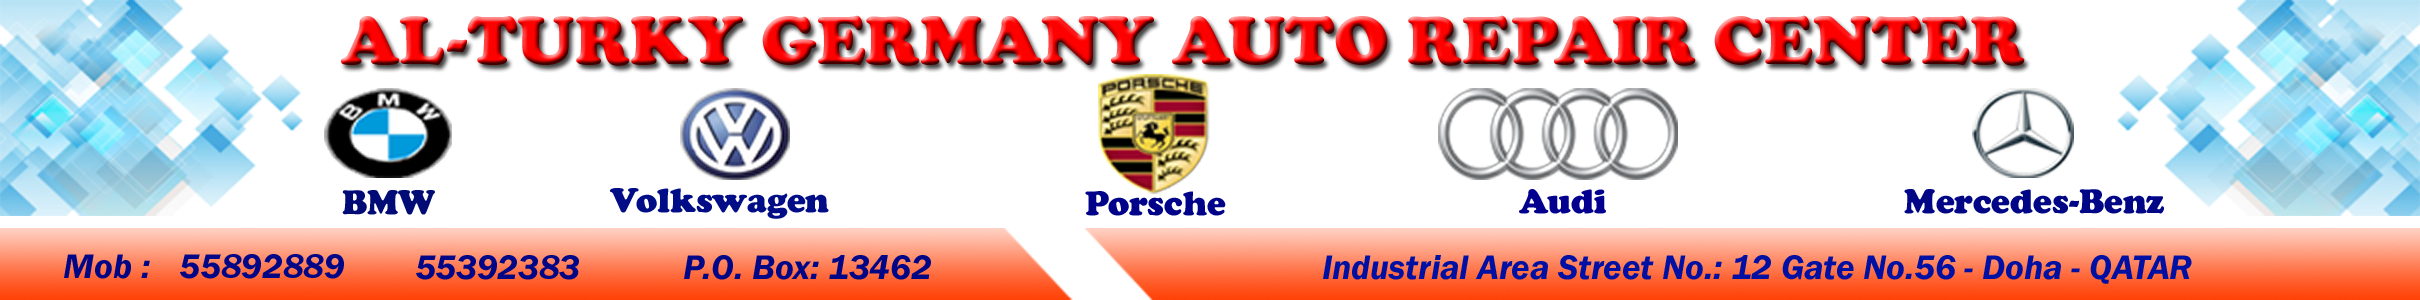 Al-Turky Germany Auto Repair Center